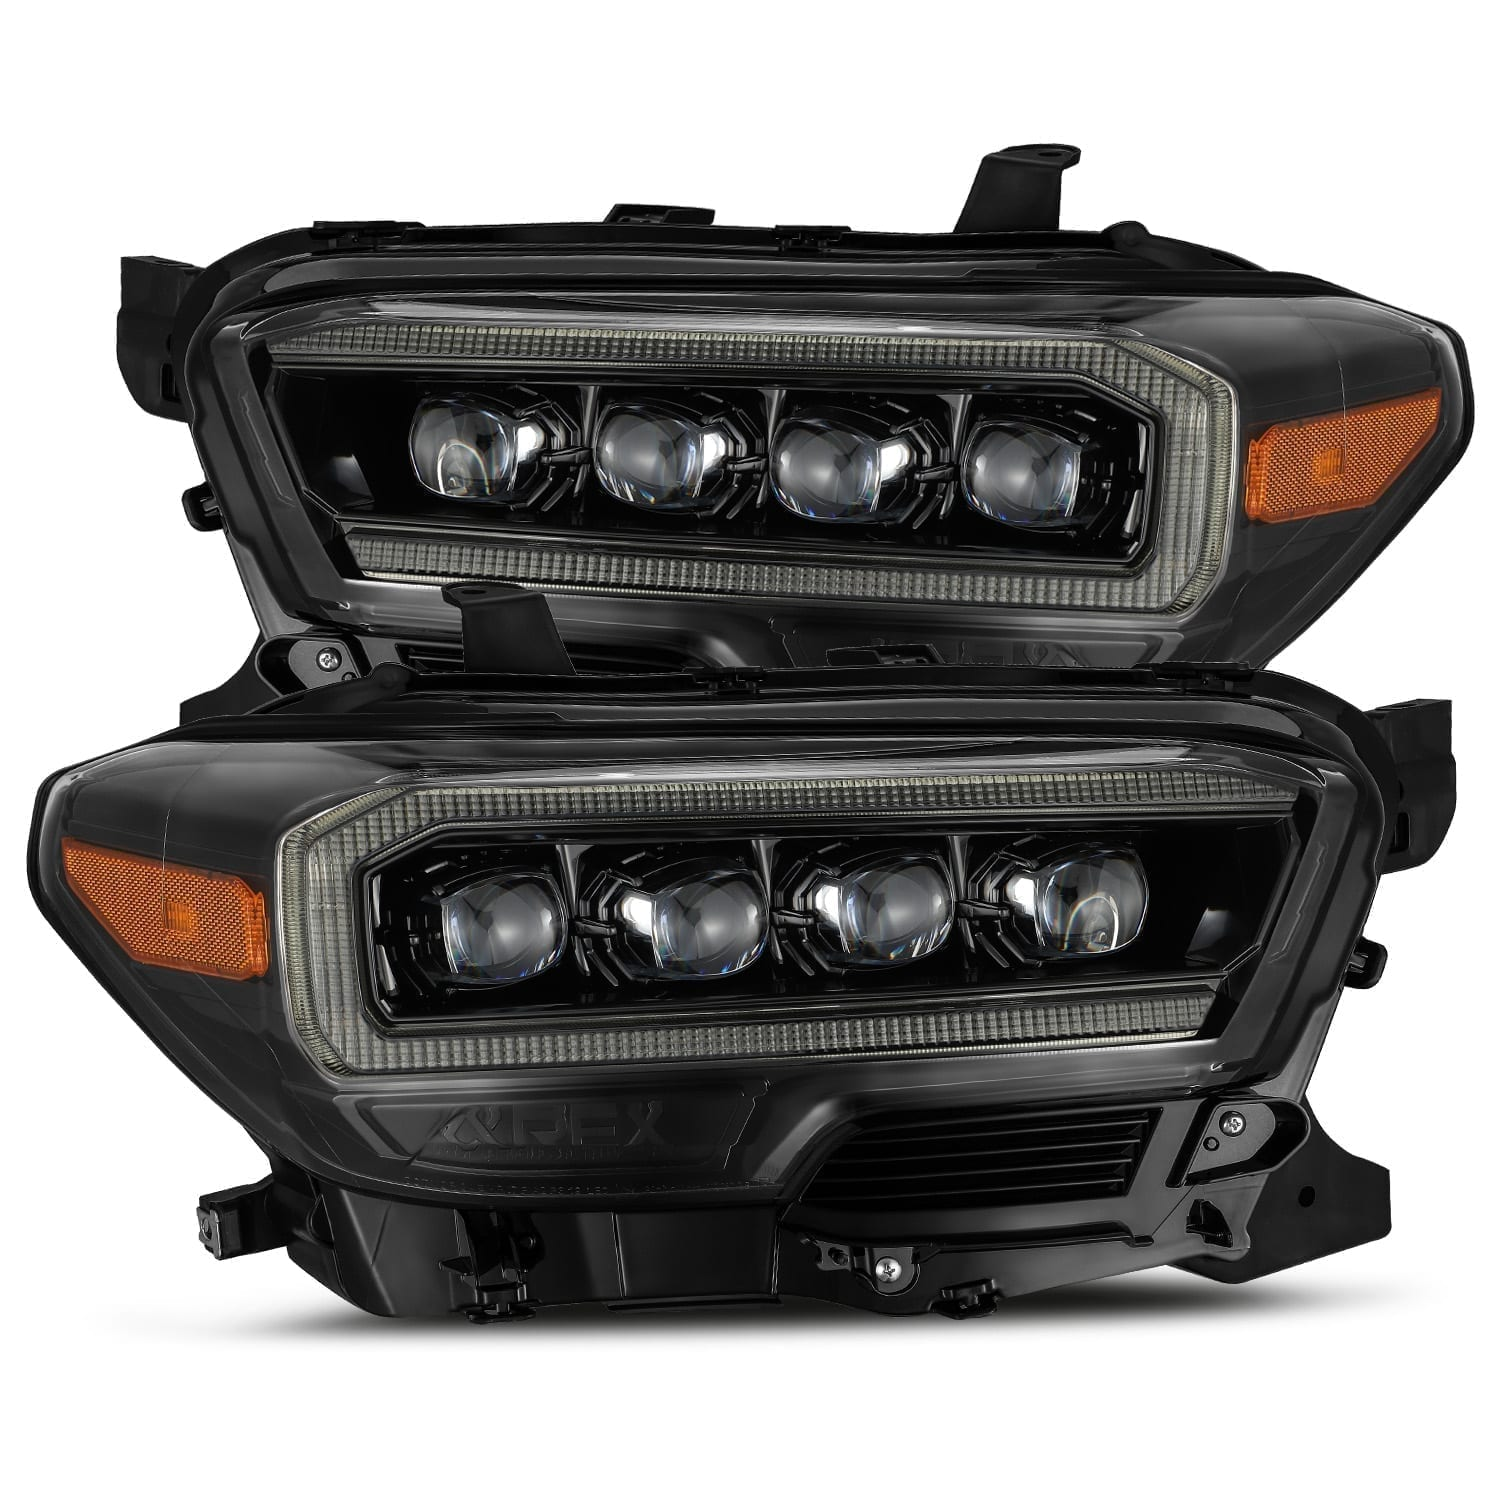 2016 2017 2018 2019 2020 Toyota Tacoma NOVA-Series Full LED Projector Headlights Midnight Black